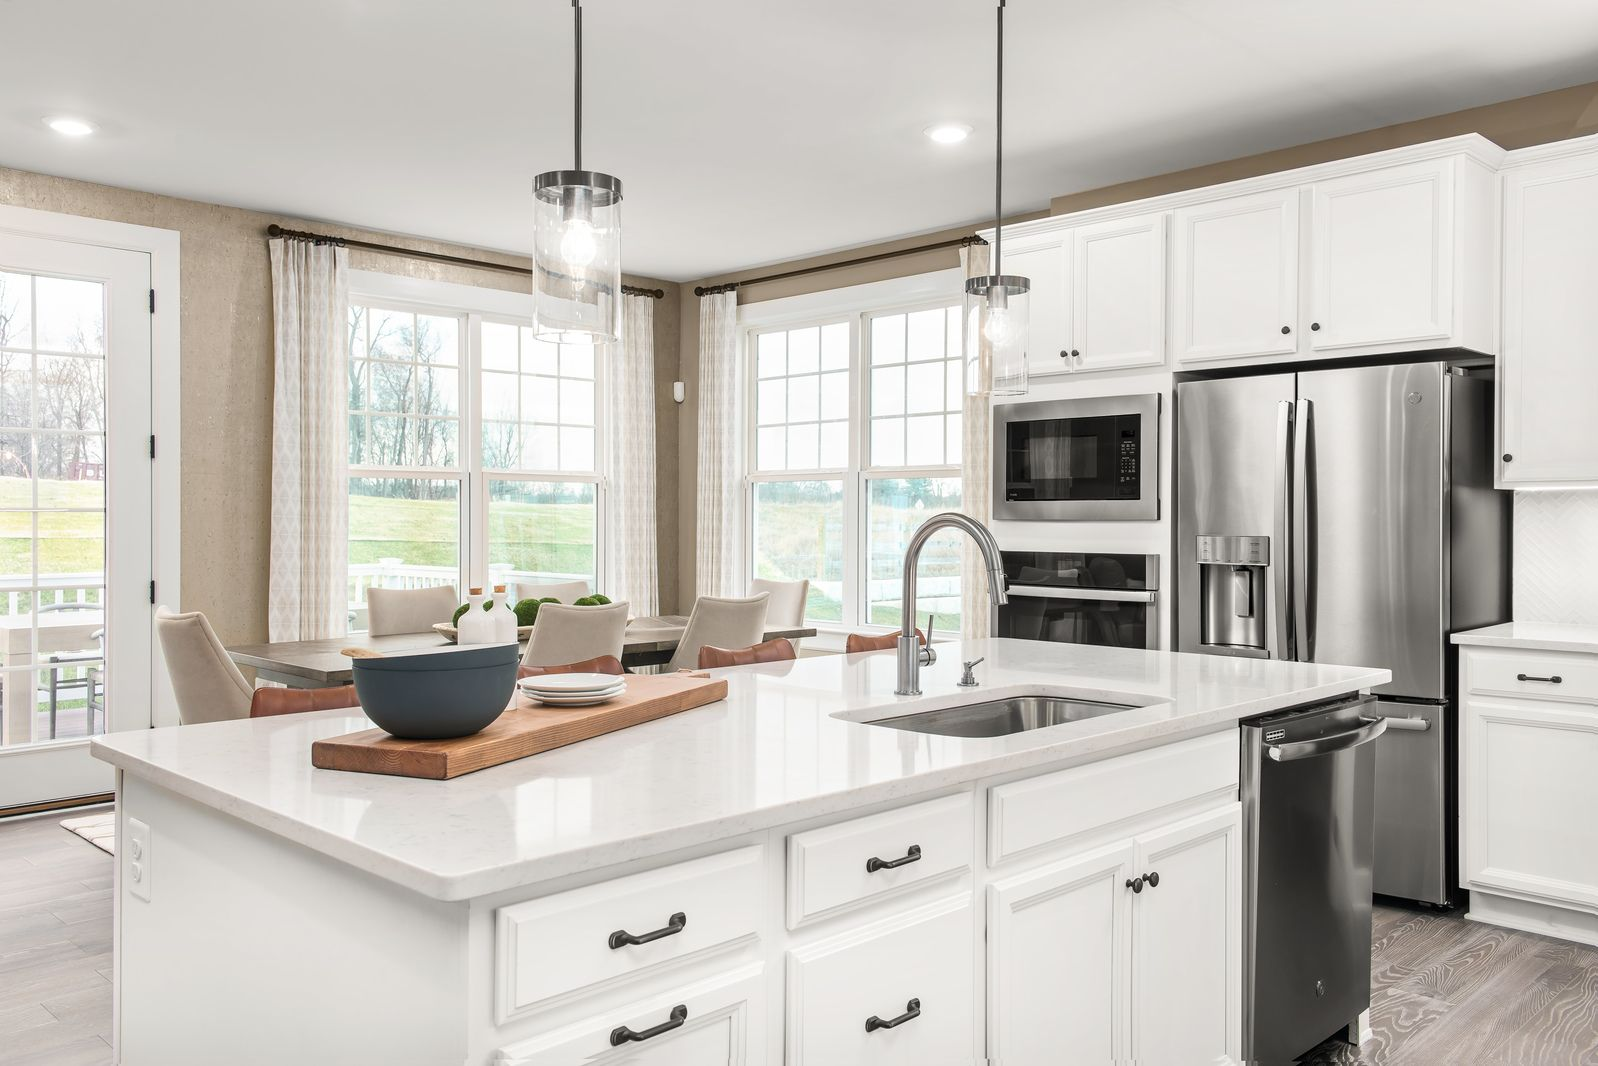 Kitchen featured in the Haverford A By NVHomes in Philadelphia, PA